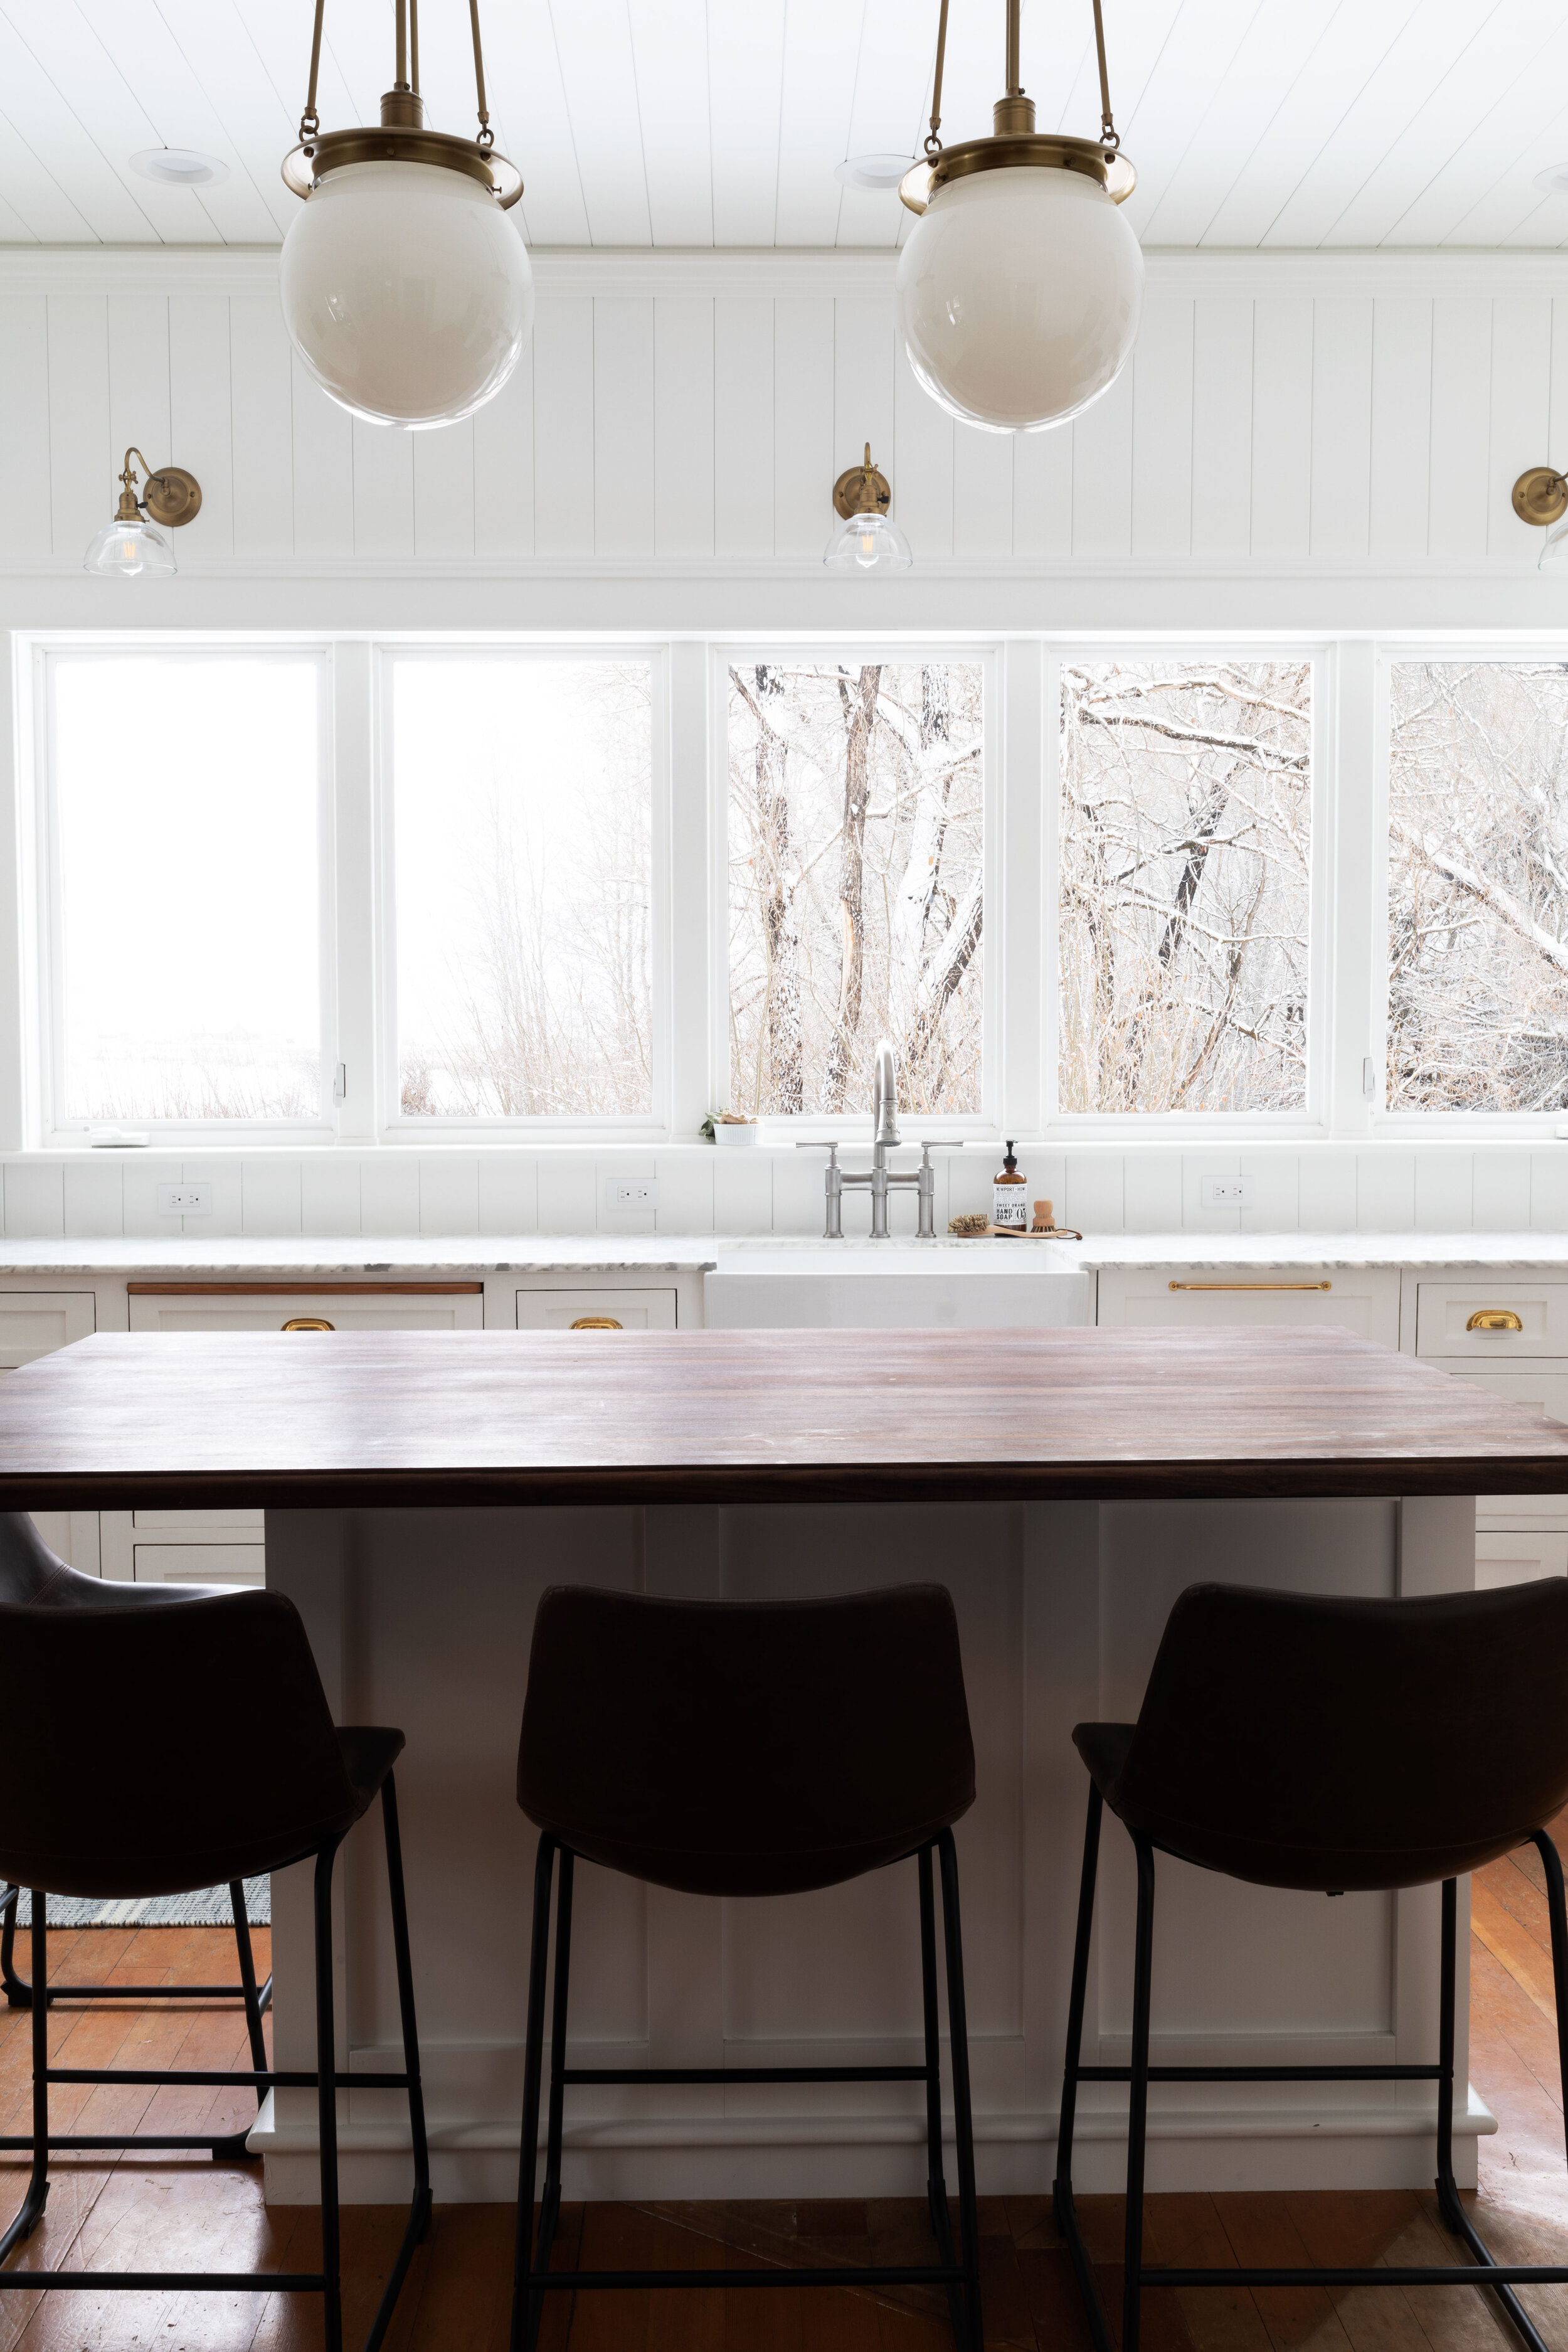 The Grit and Polish - Farmhouse Country Kitchen Reveal 3.0 29 web.jpg